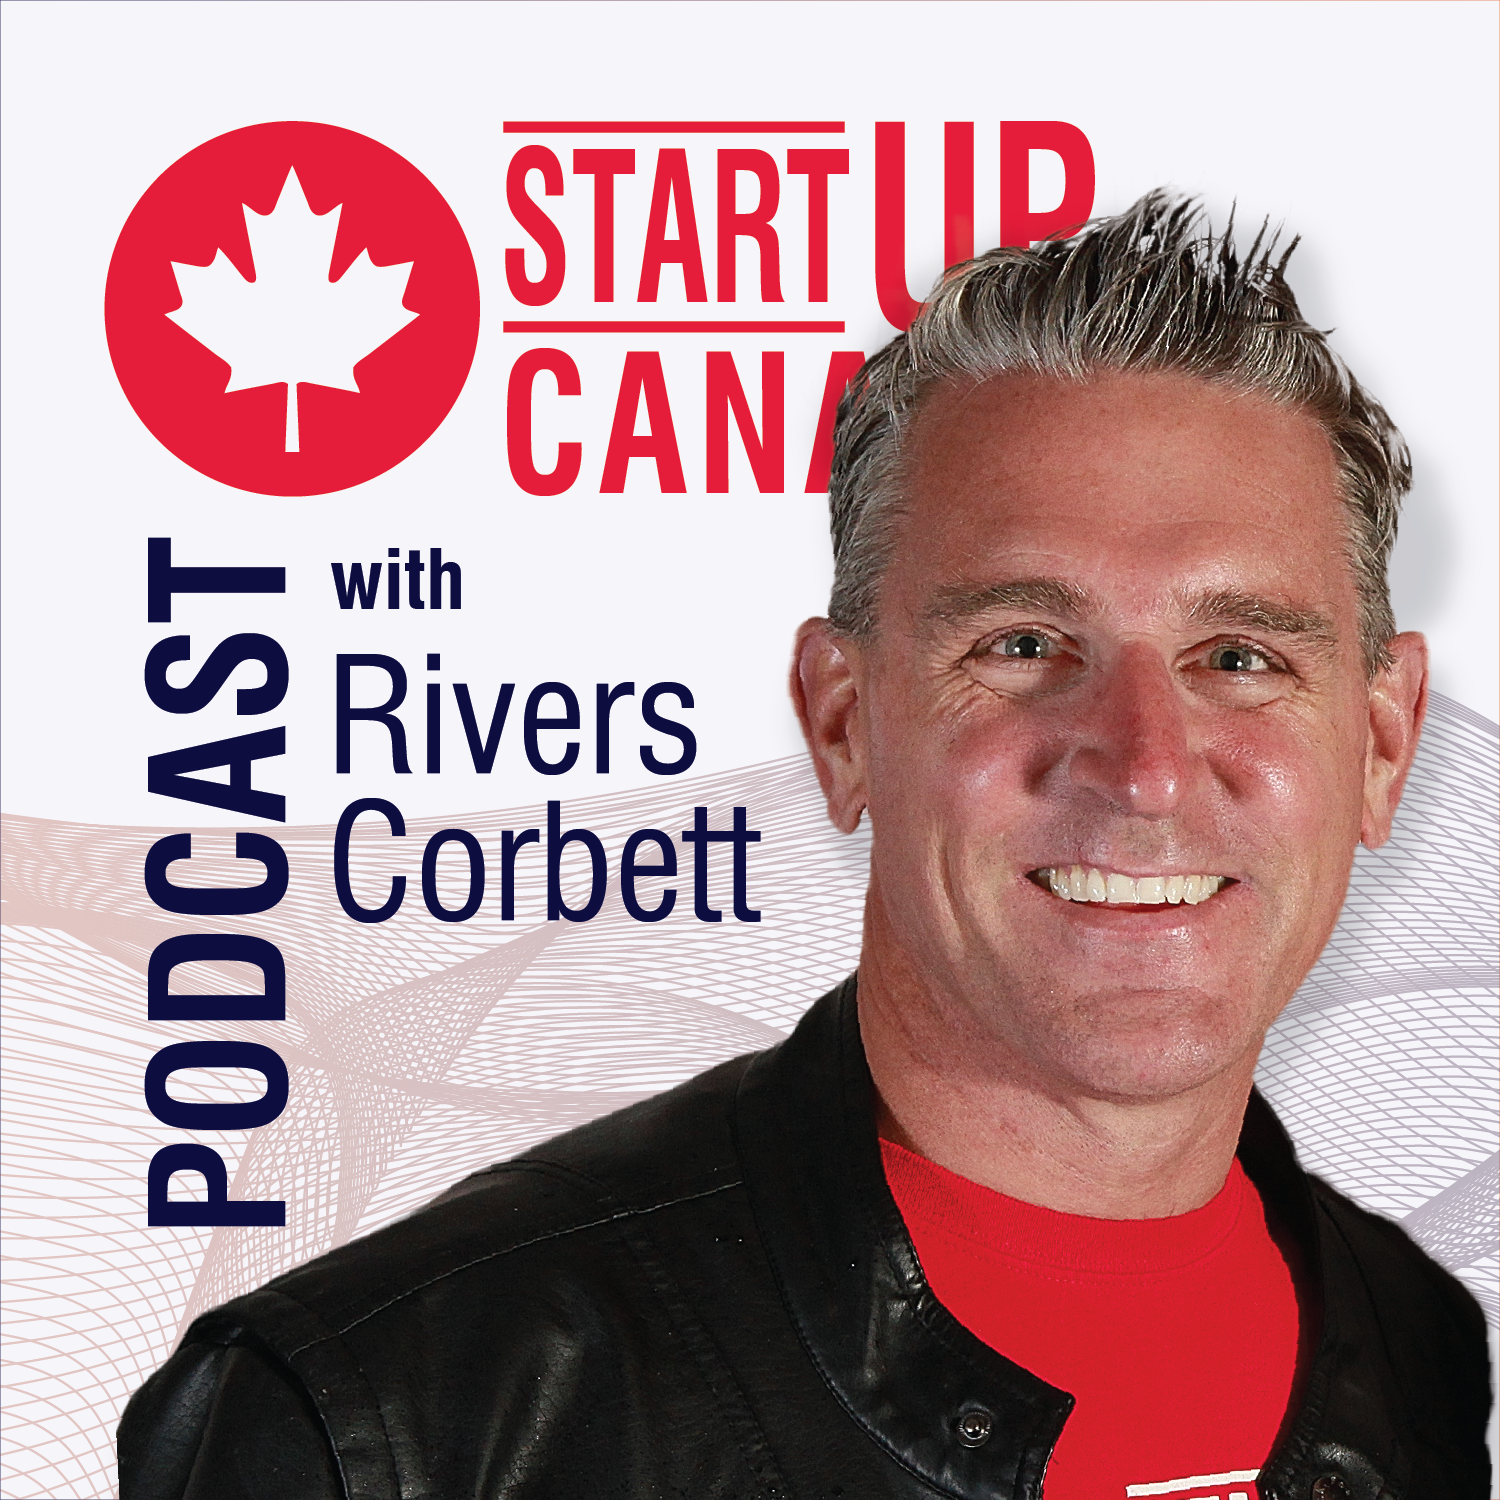 Startup Canada Podcast E210 - Creating out of the box comms with Lyndon Johnson